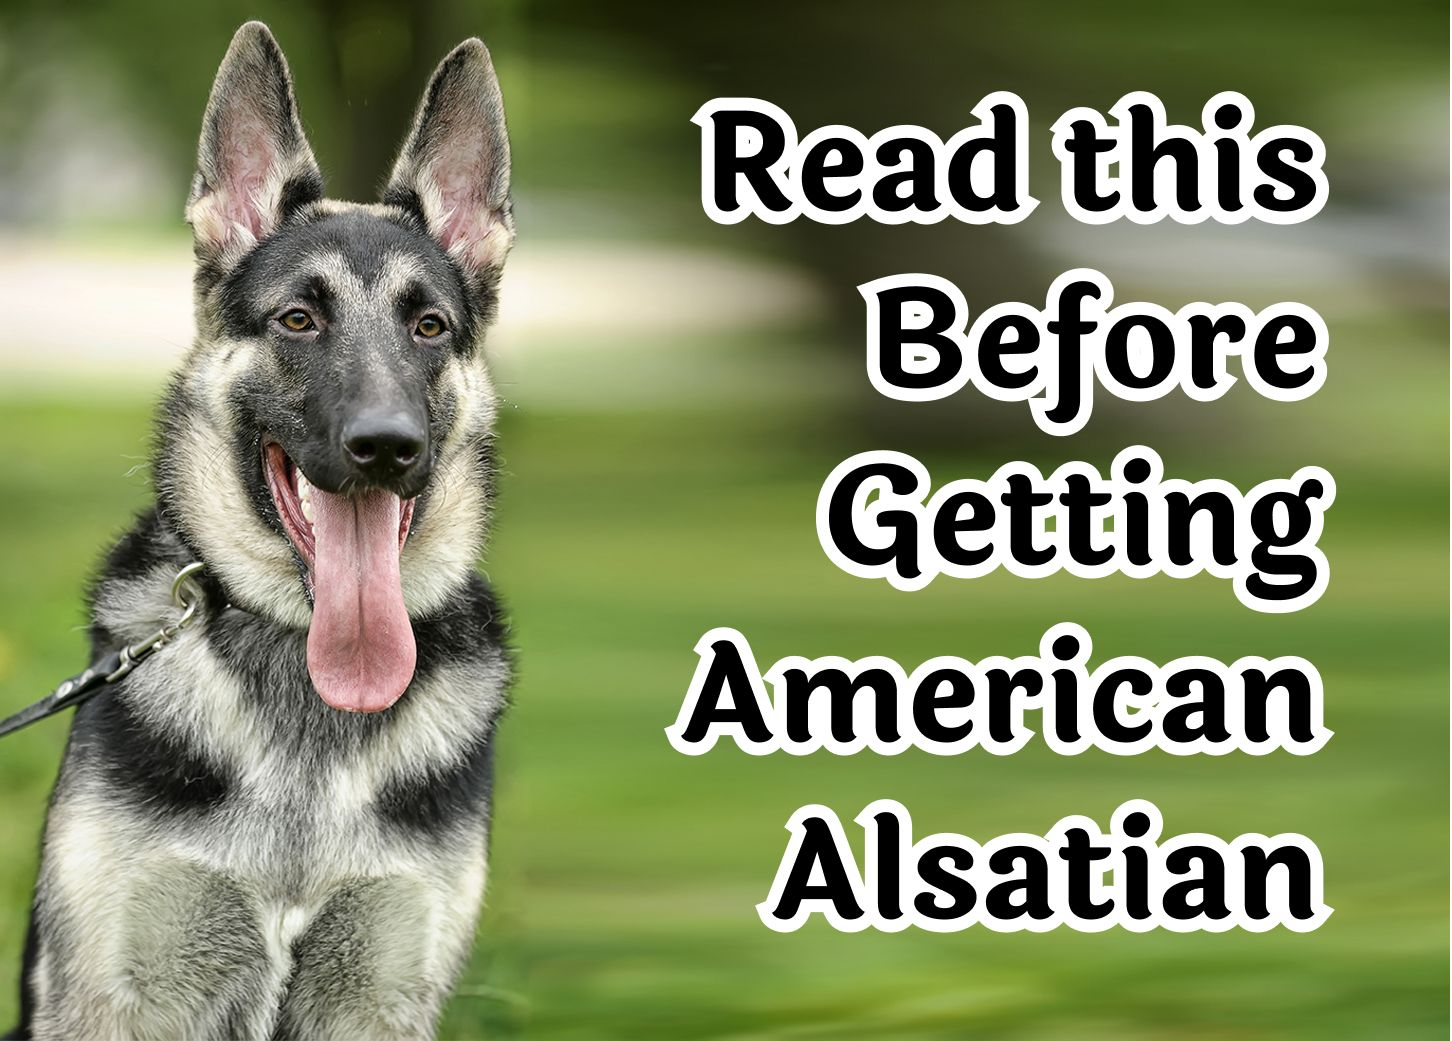 28 Questions to Consider Before Getting A American Alsatian